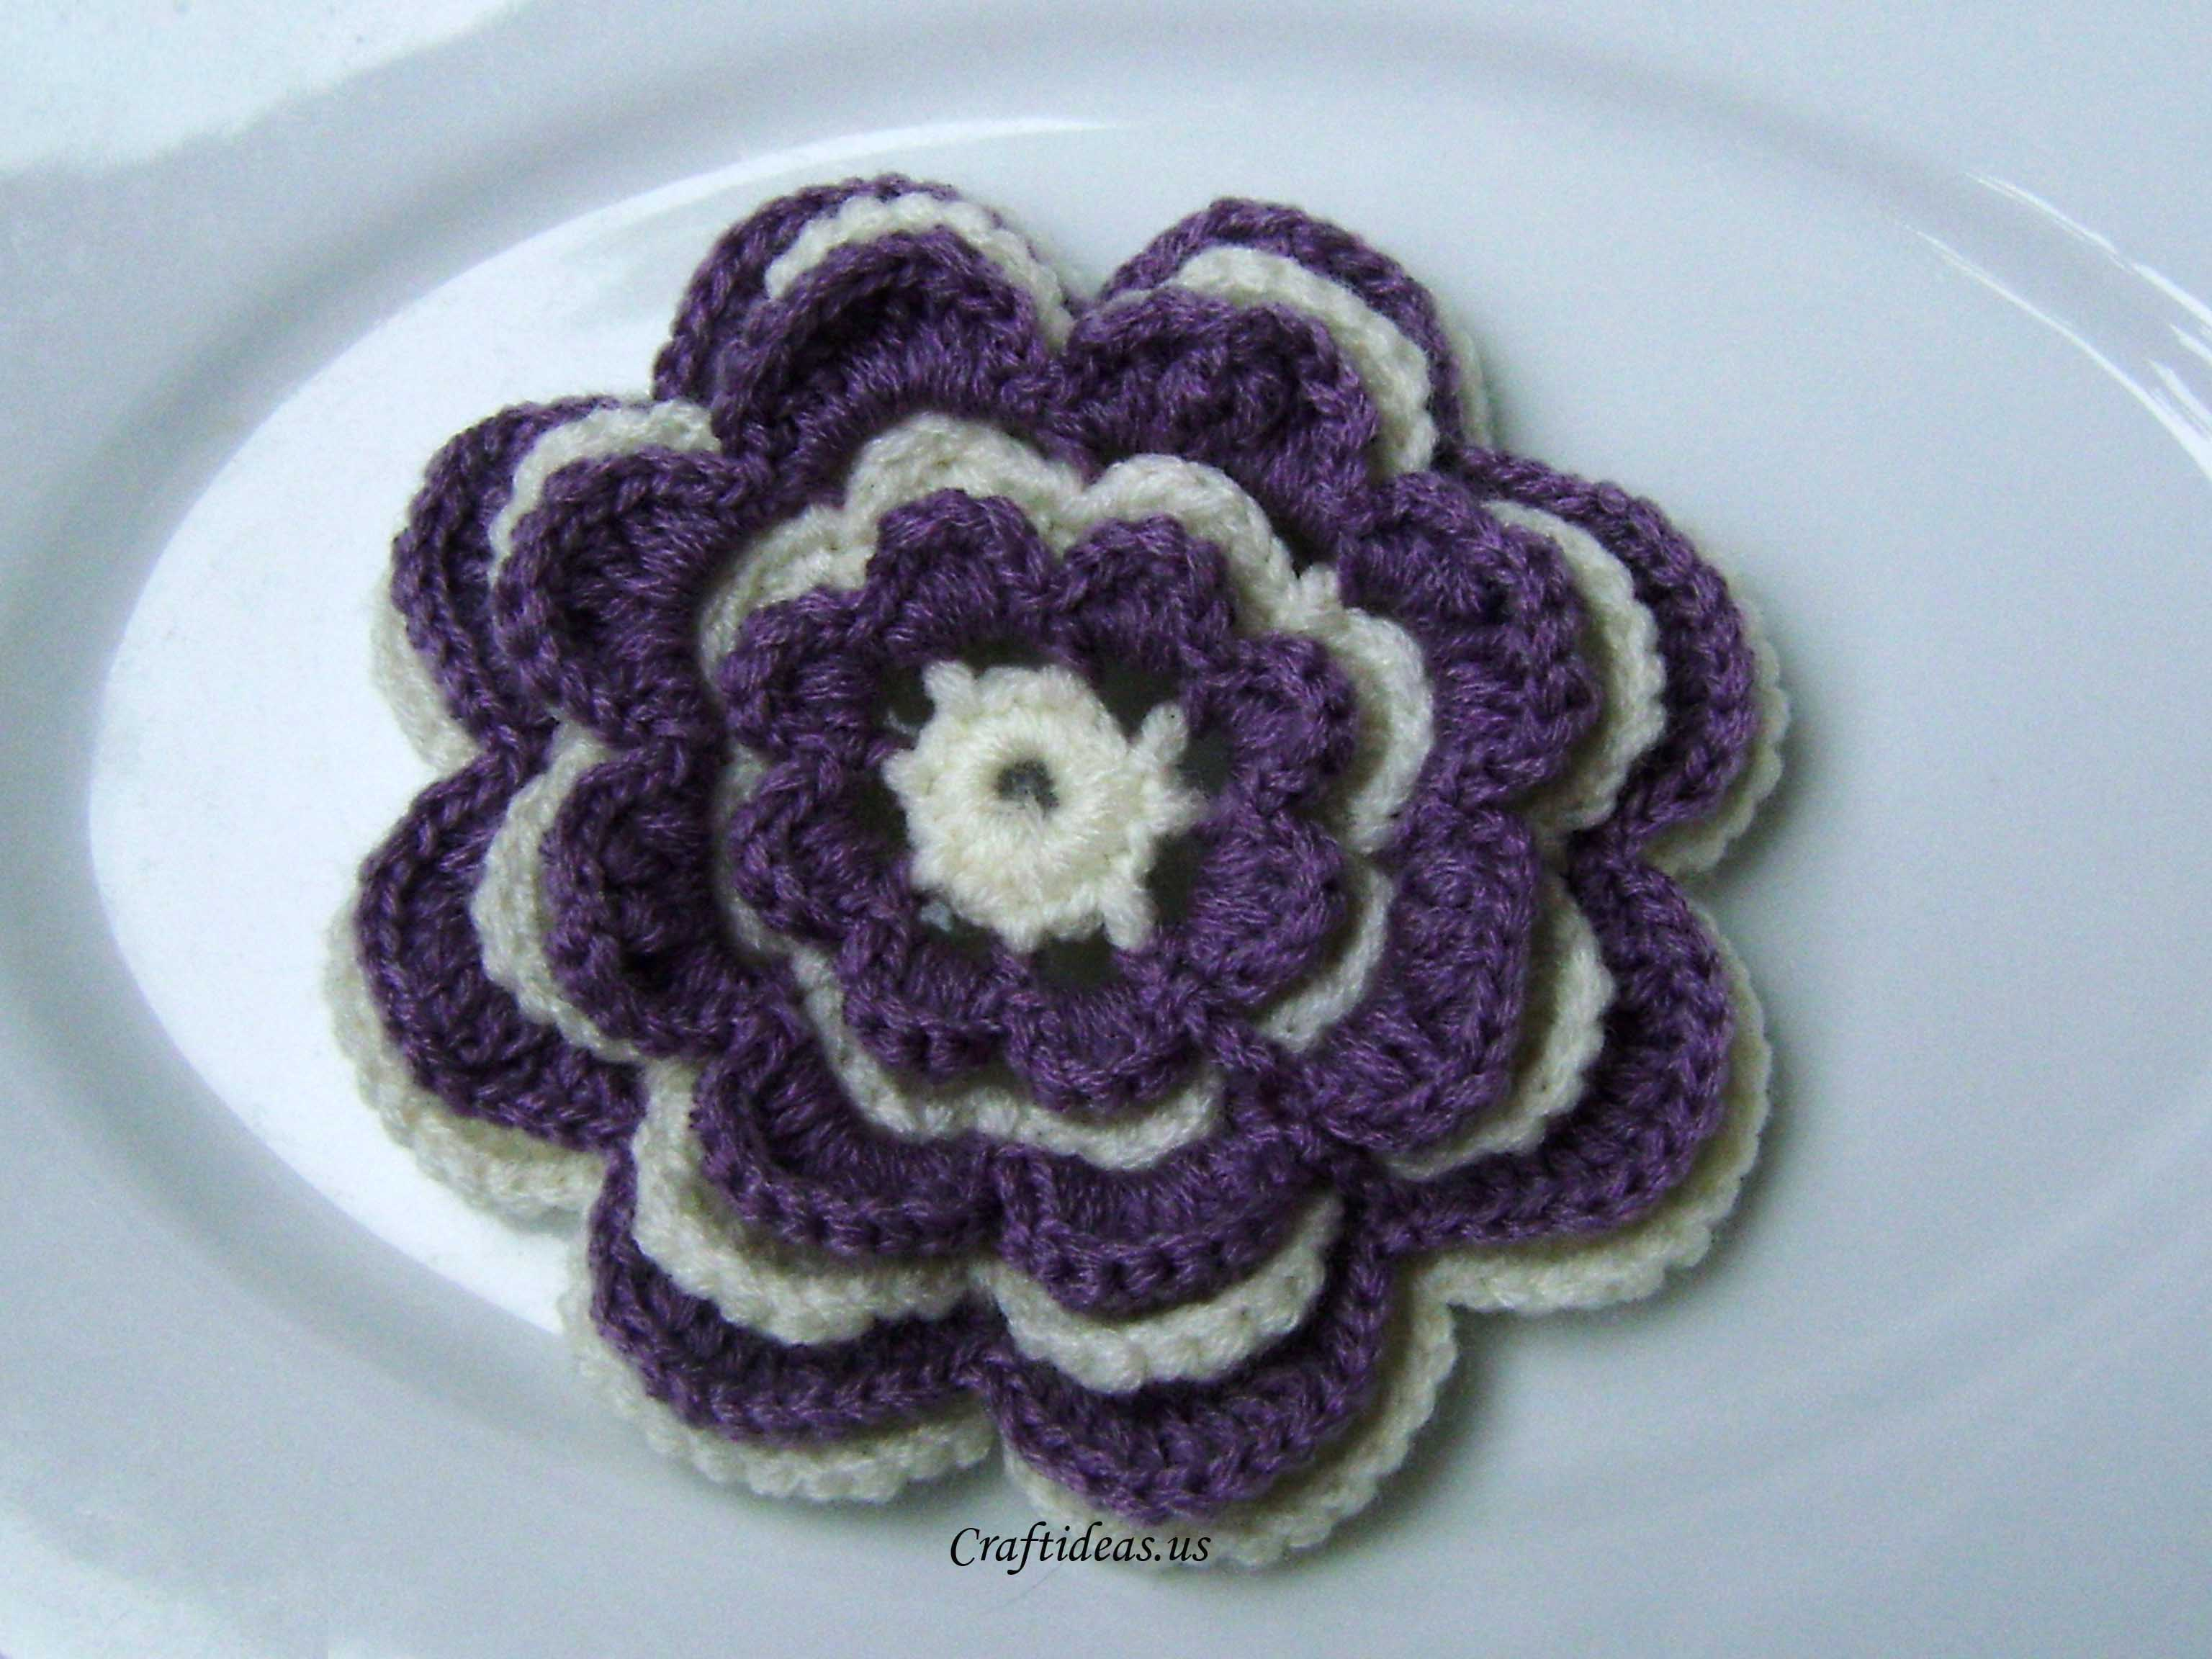 Crochet flower tutorial - Craft Ideas